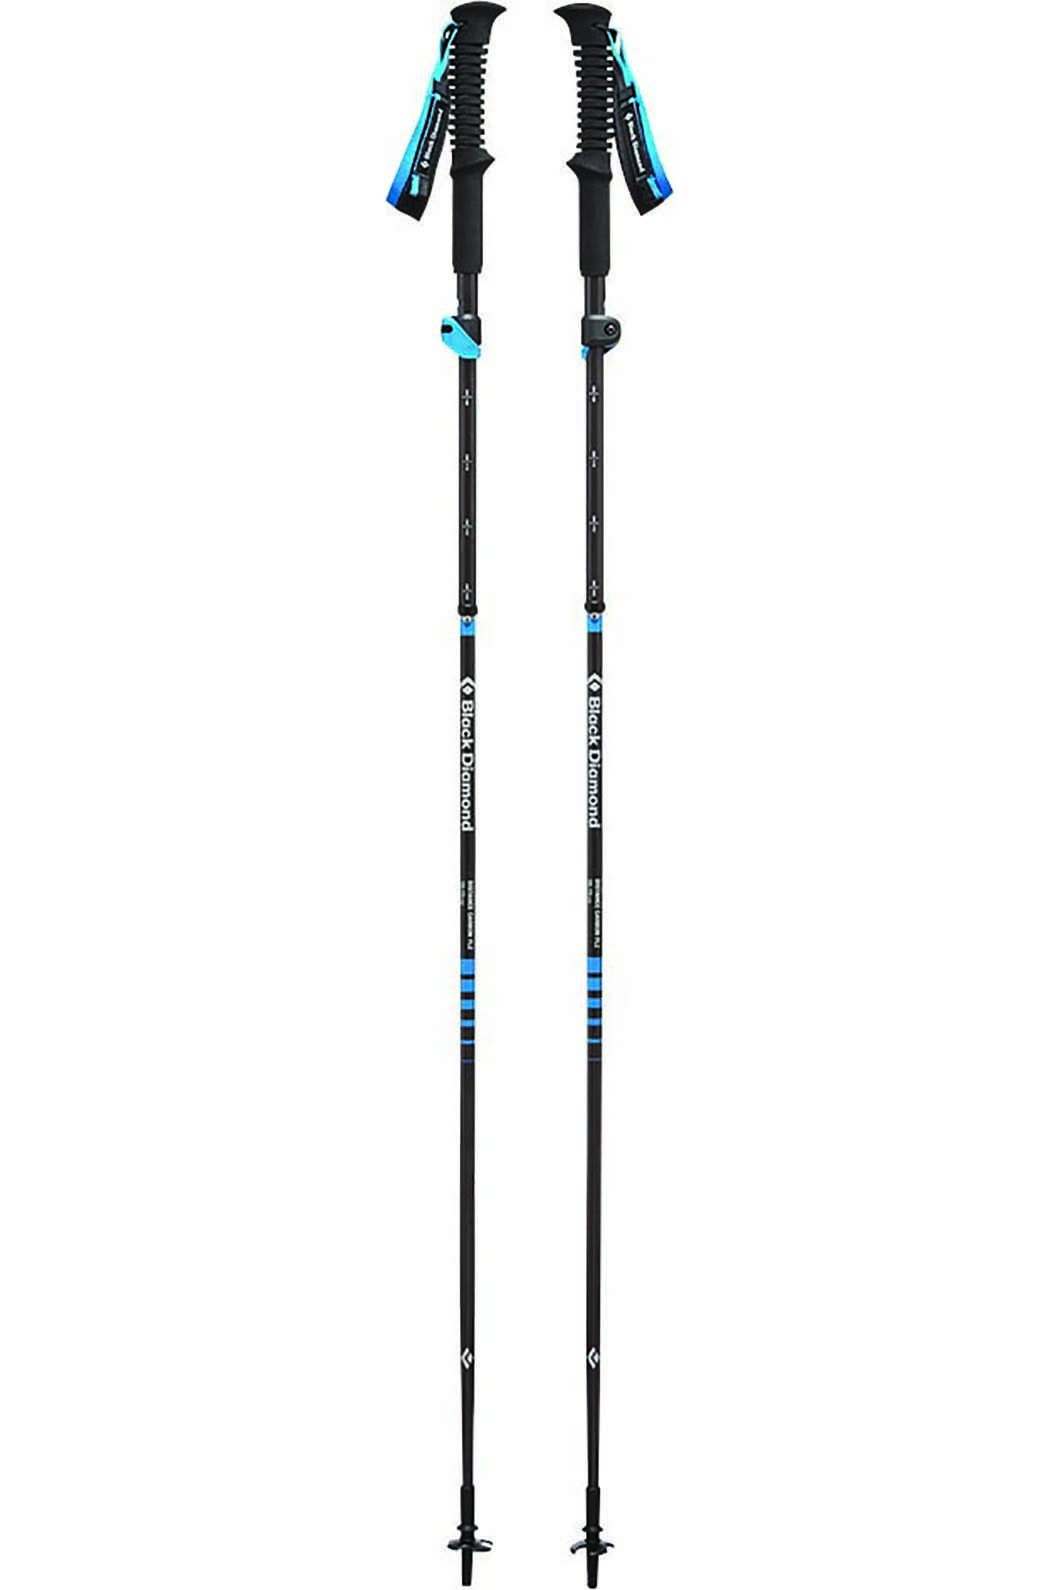 Black Diamond Distance FLZ Trekking Pole 125cm, None, hi-res